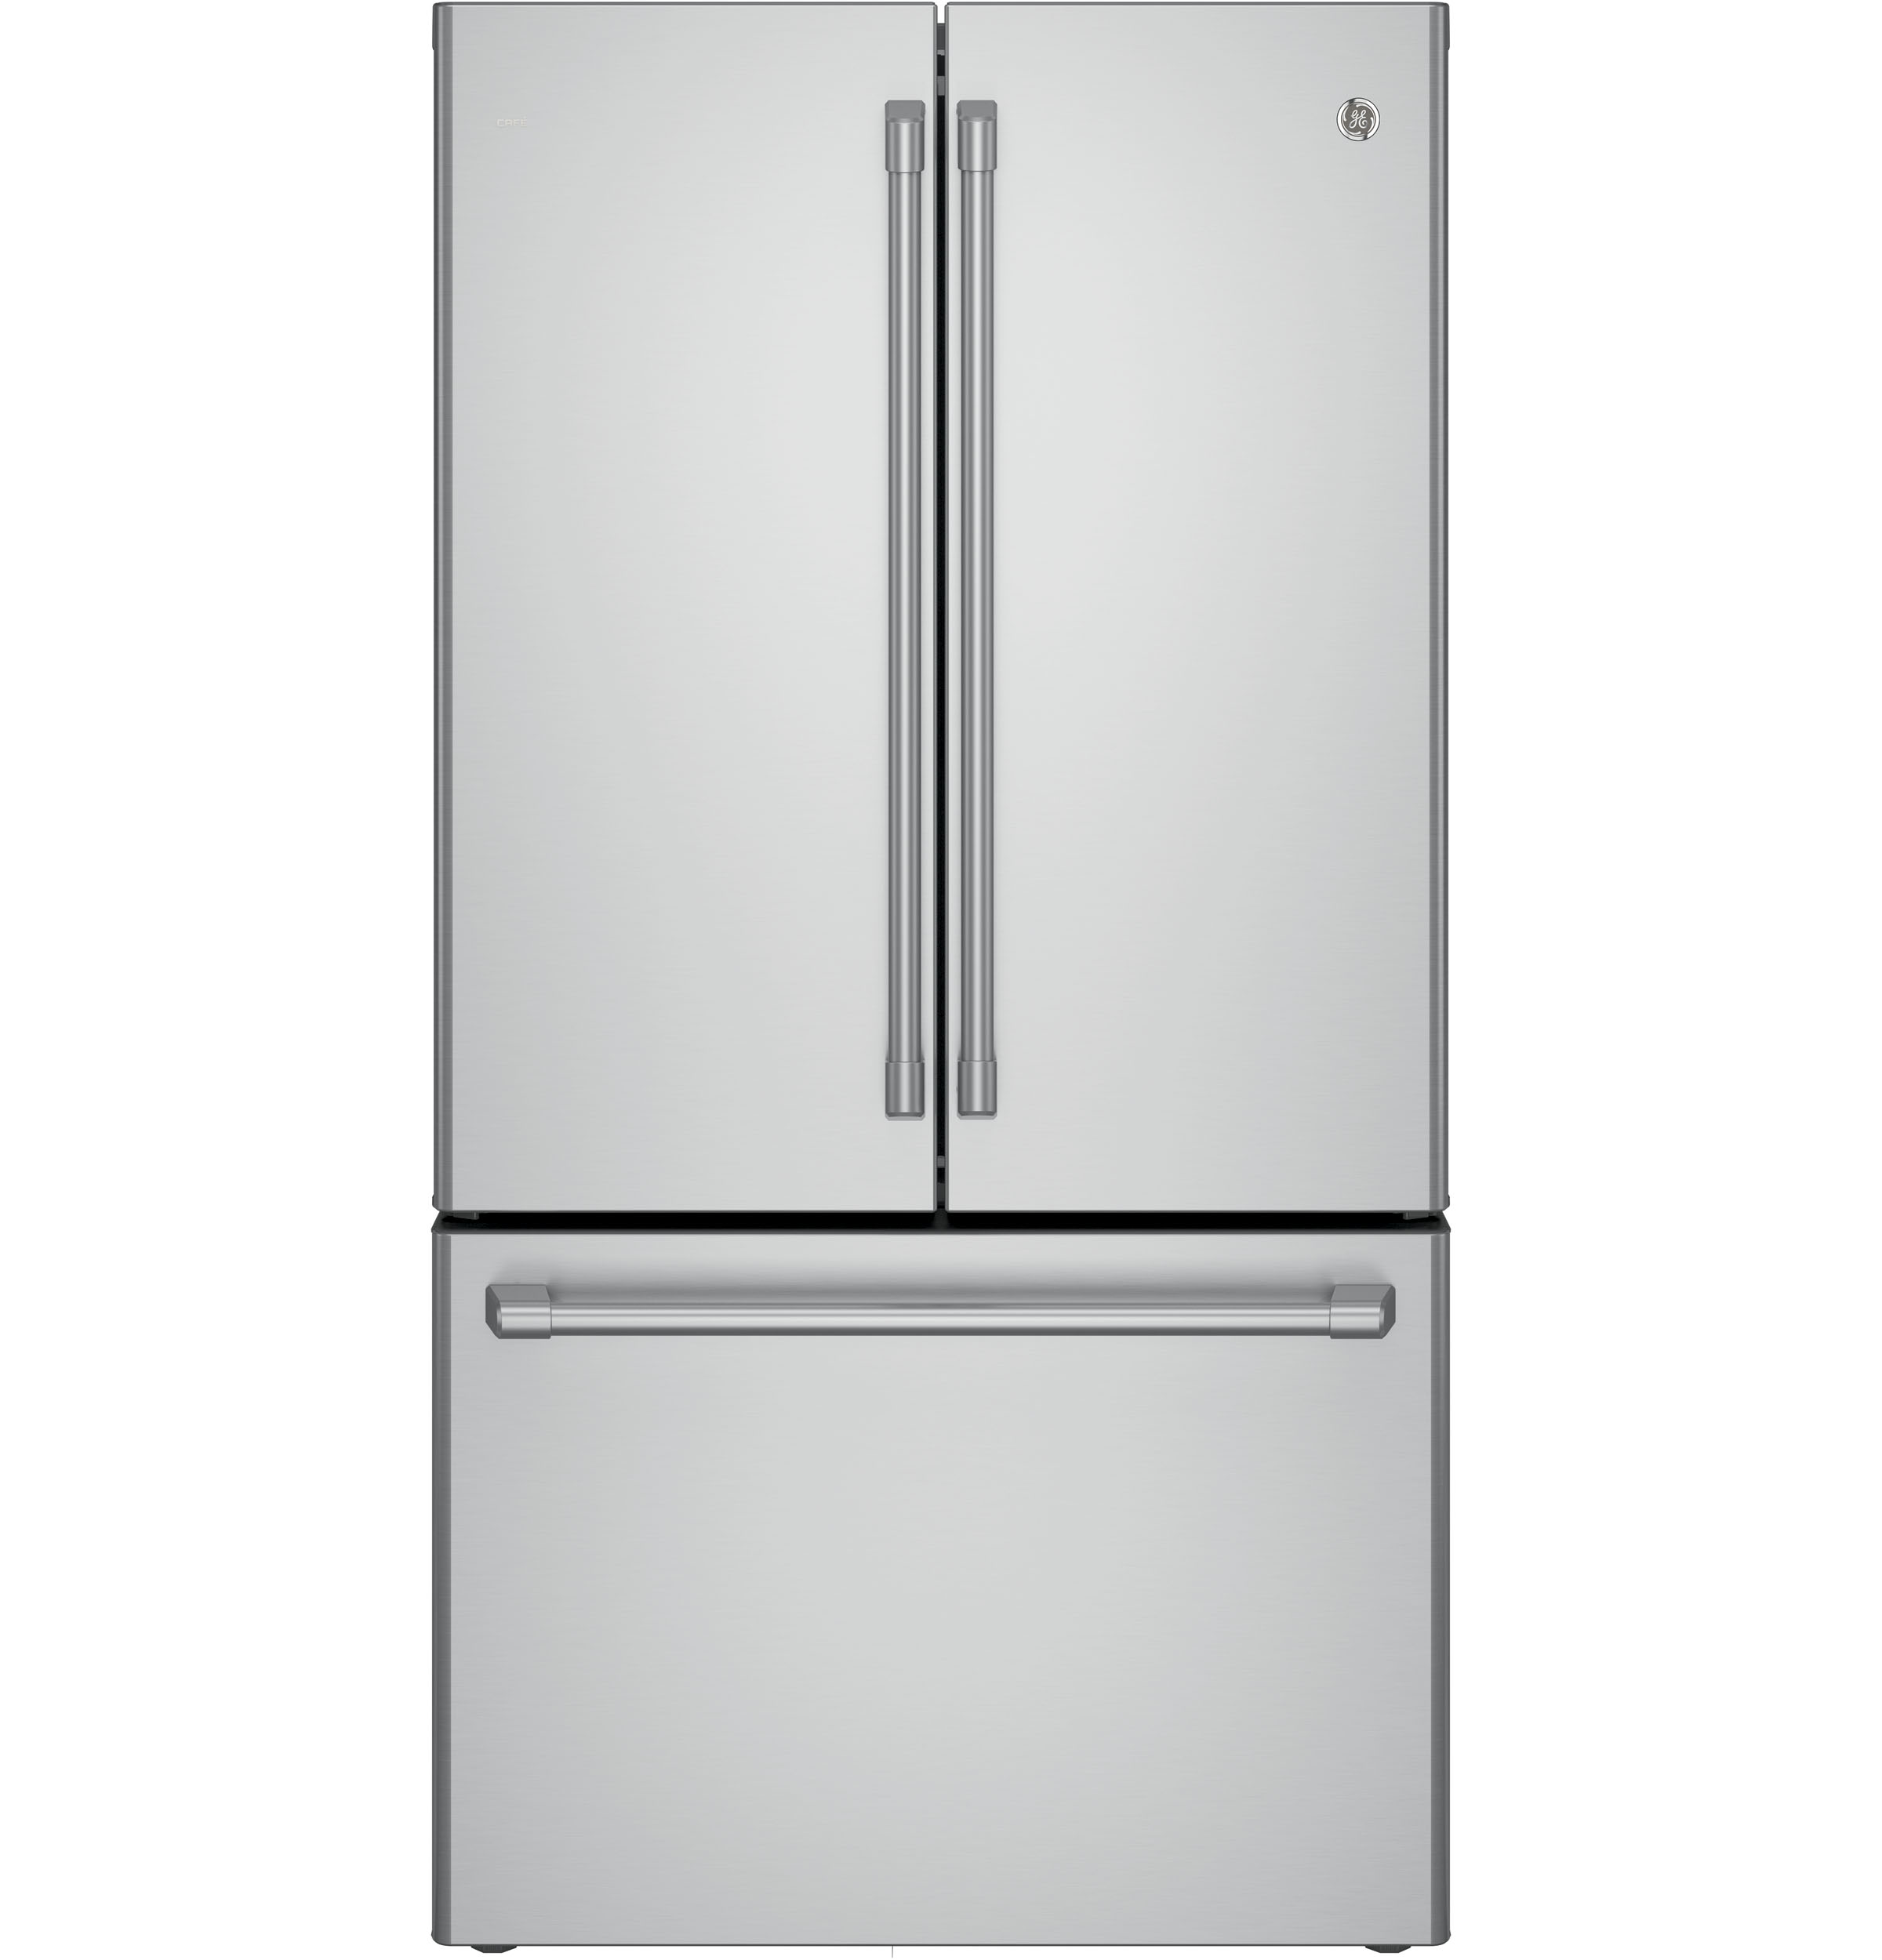 GE Café™ Series ENERGY STAR® 23.1 Cu. Ft. Counter-Depth French-Door Refrigerator